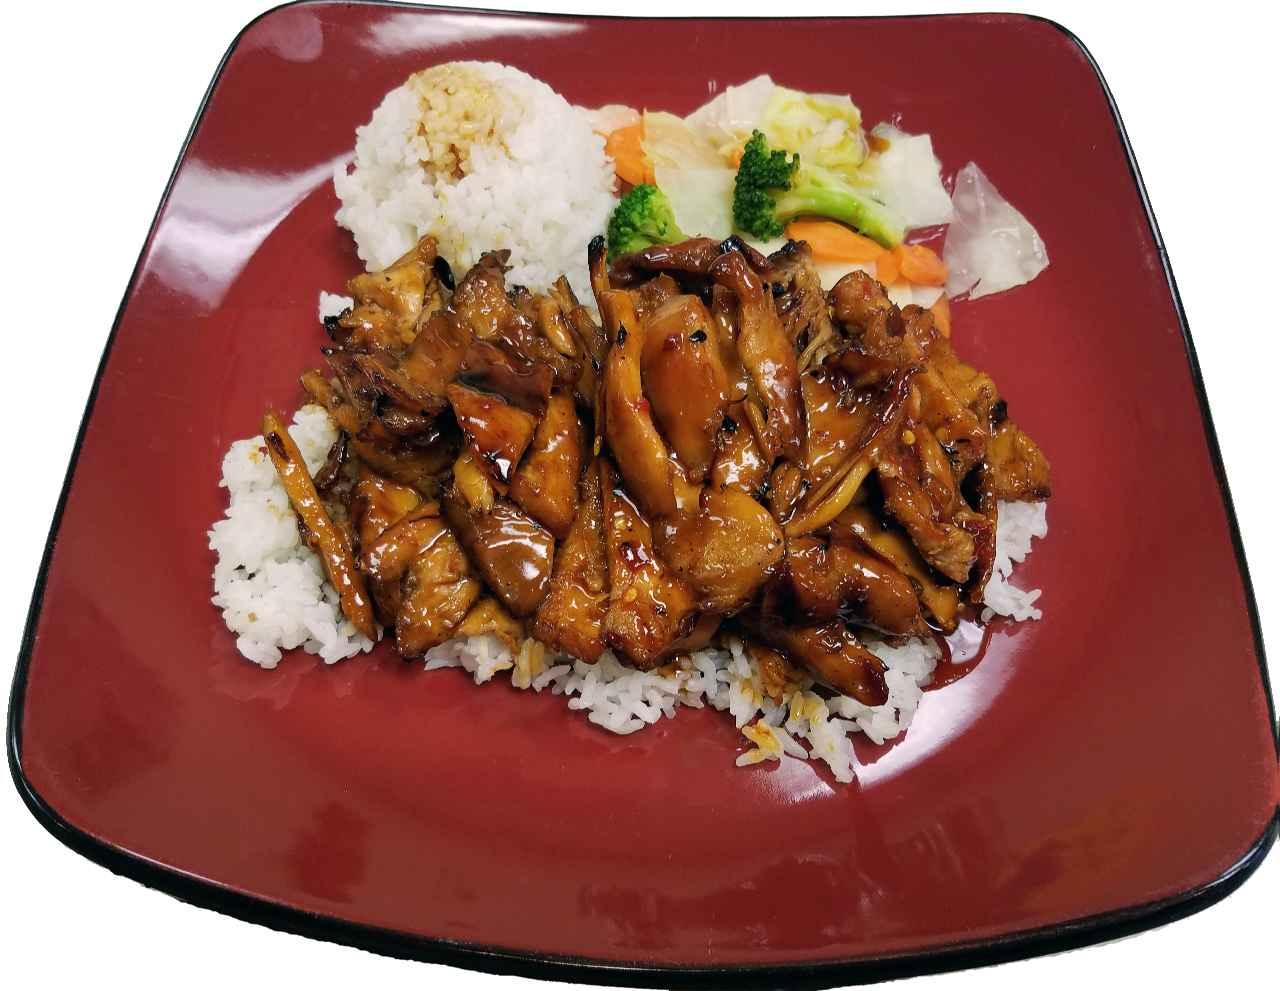 #3. Spicy Teriyaki Zingy! – HOT!